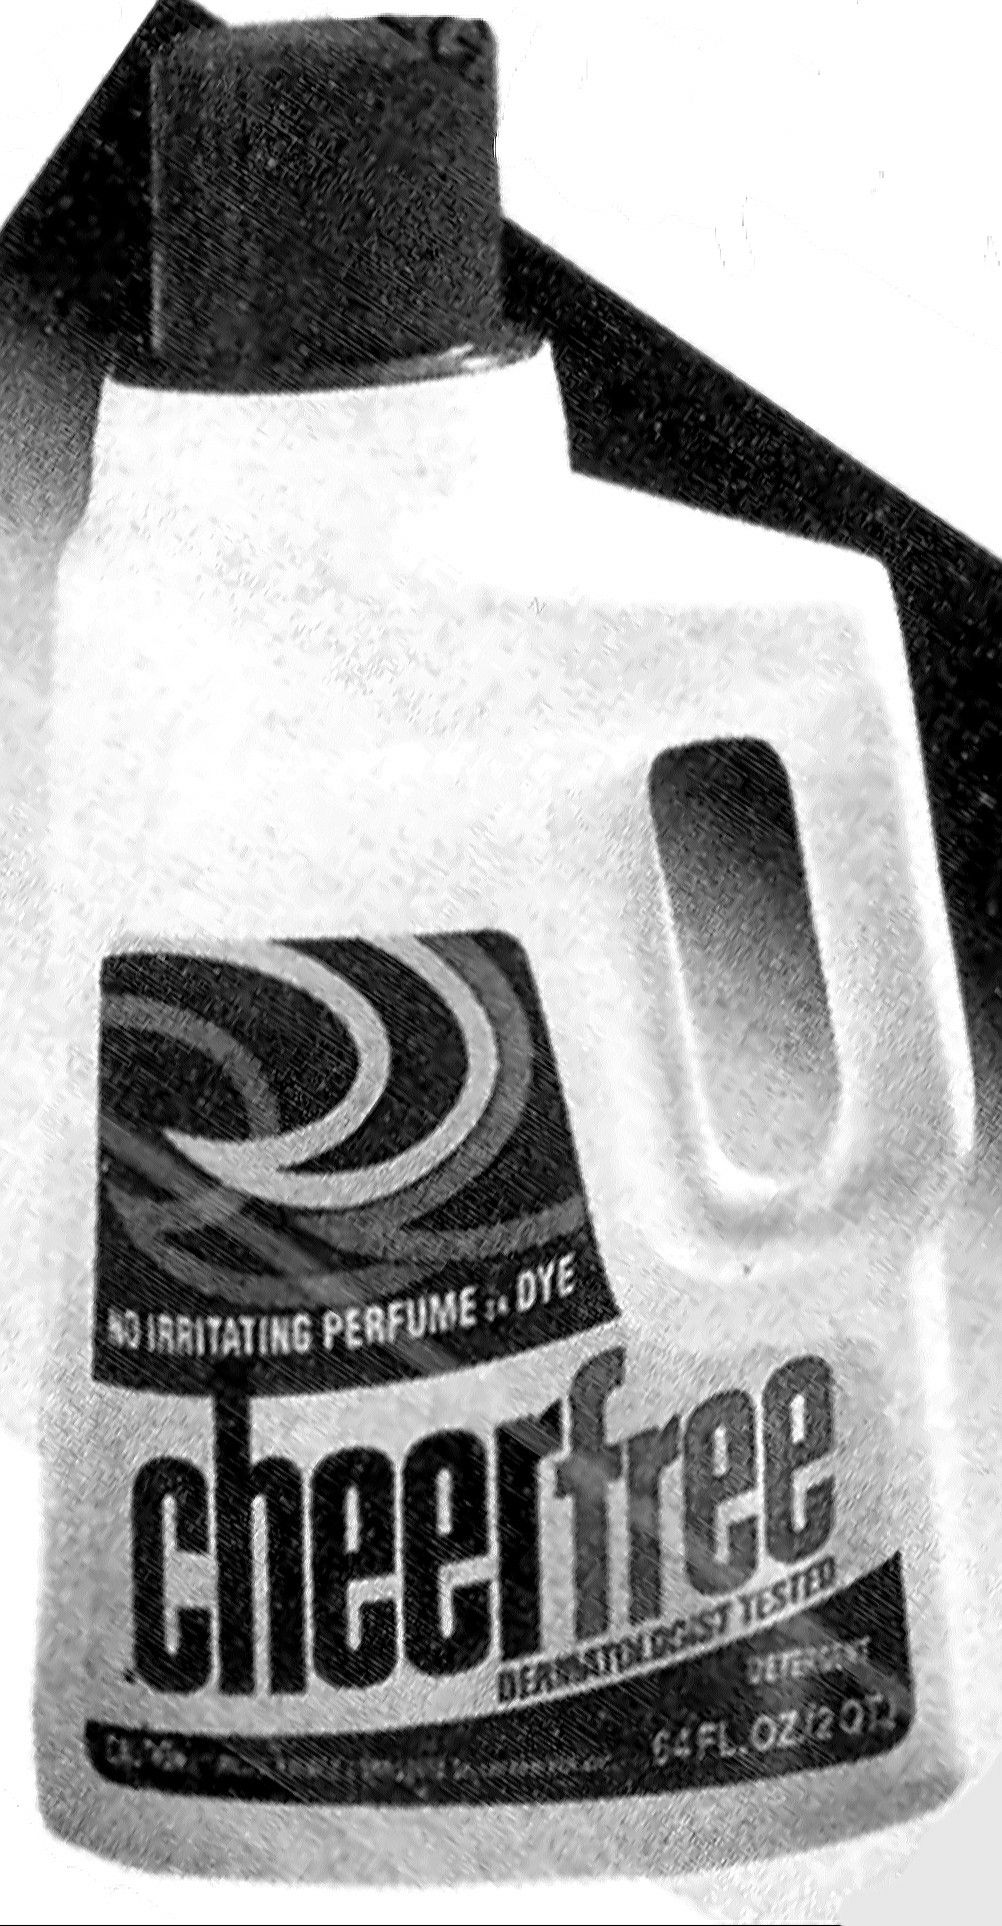 Cheer Free Laundry Detergent With No Perfumes Or Dyes 1989